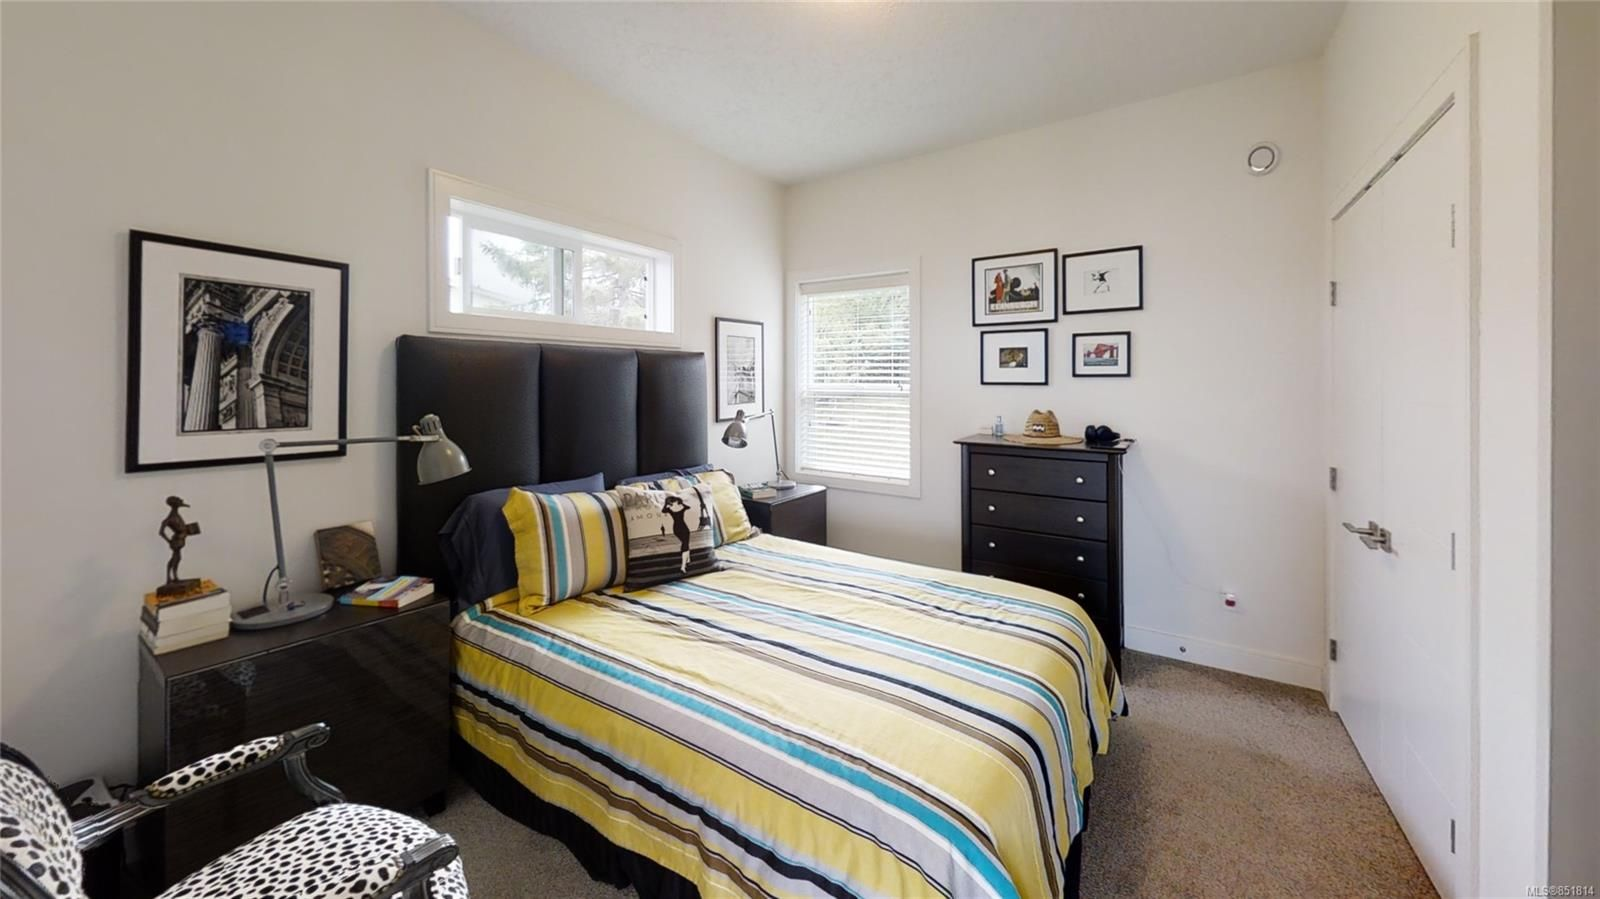 Photo 52: Photos: 191 Muschamp Rd in : CV Union Bay/Fanny Bay House for sale (Comox Valley)  : MLS®# 851814